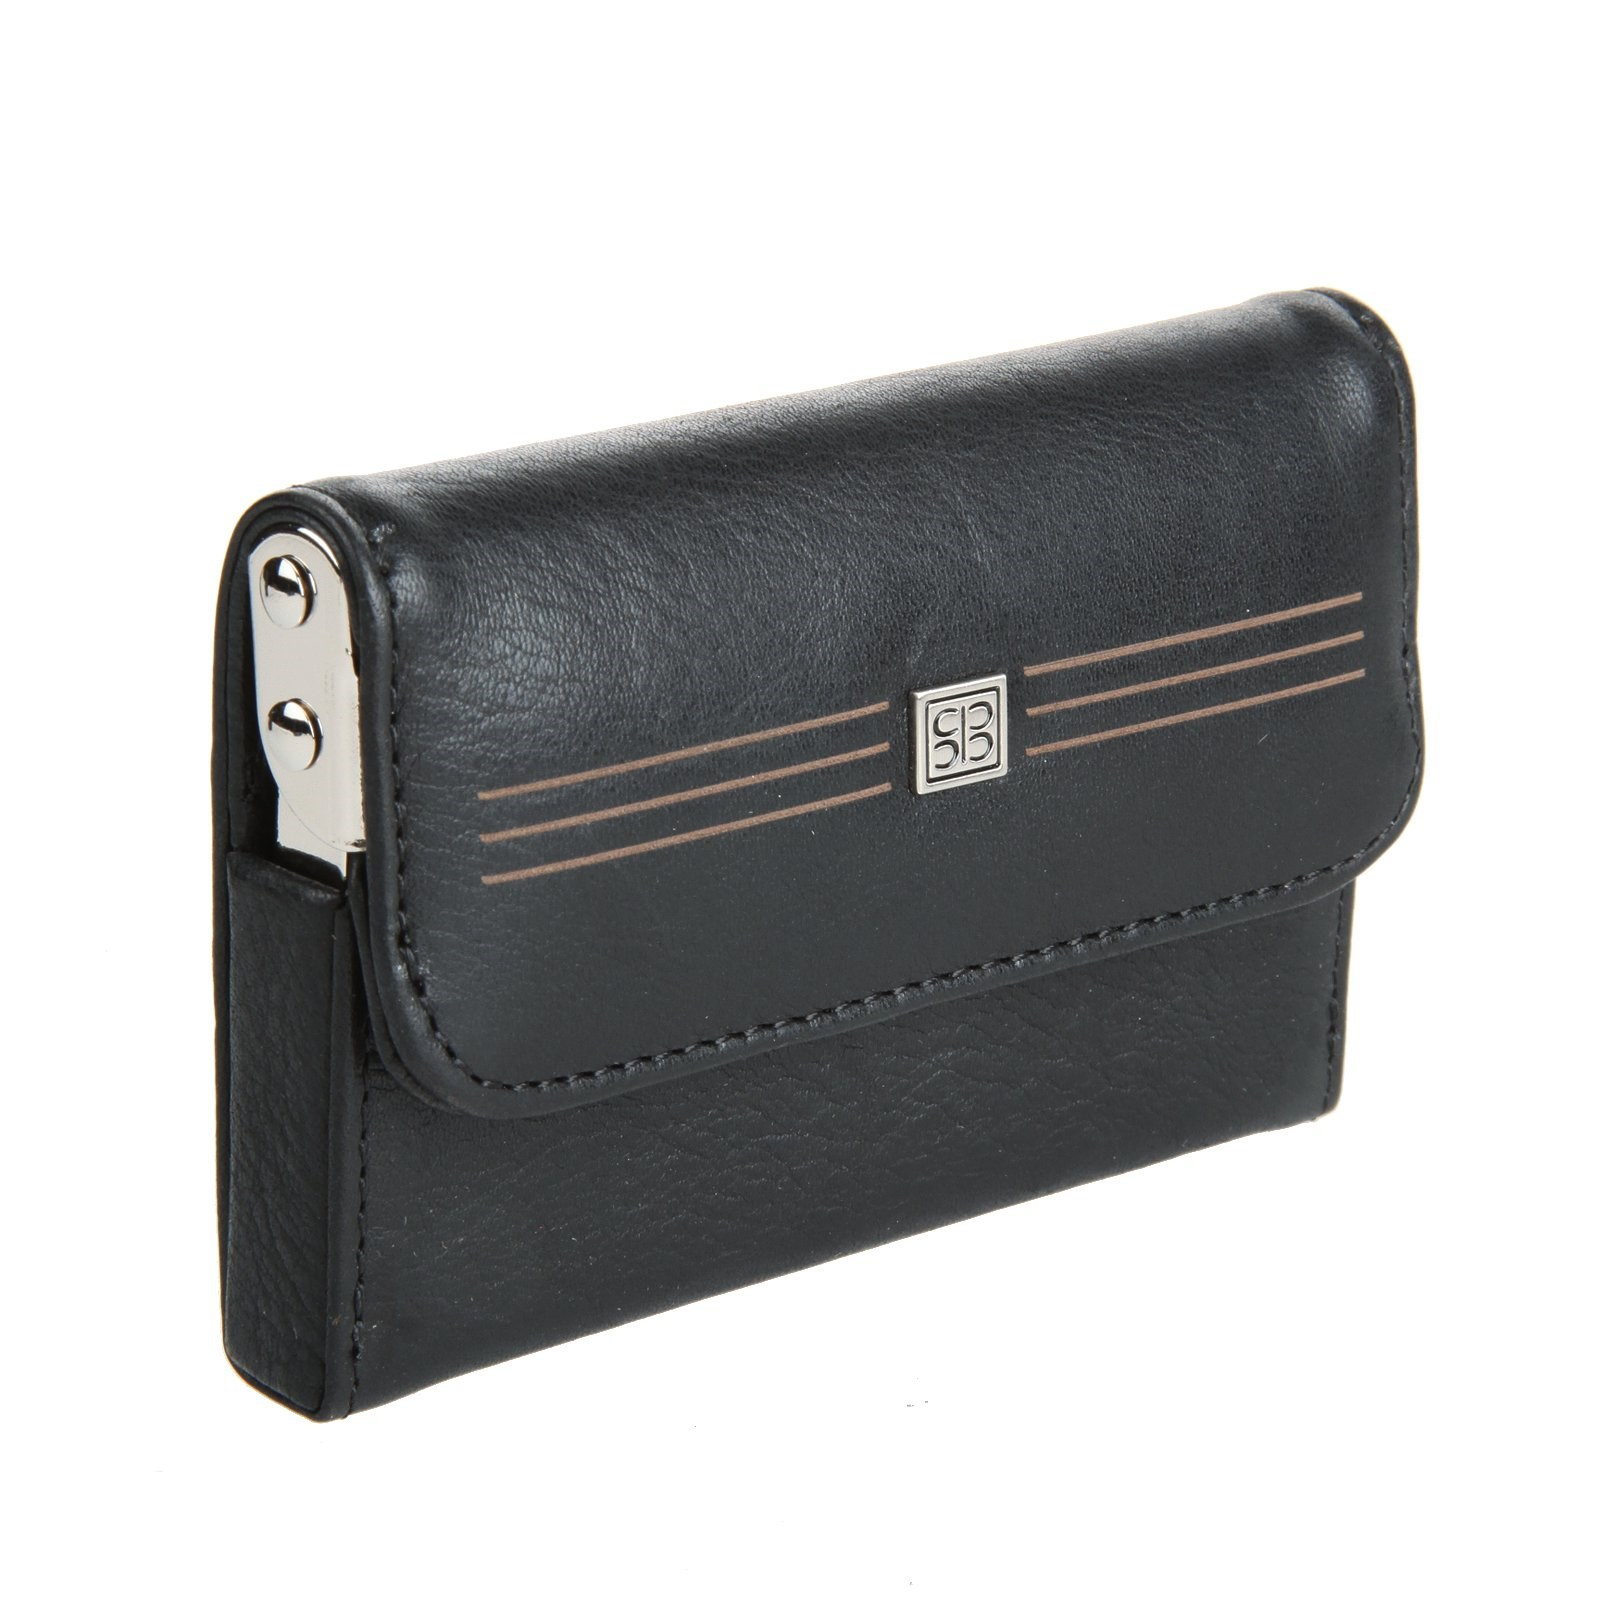 Business Card Holder Sergio Belotti 2680 West black 2017 new fashion id holders bank credit card holder unisex pu leather card case business working id badge covers without lanyard